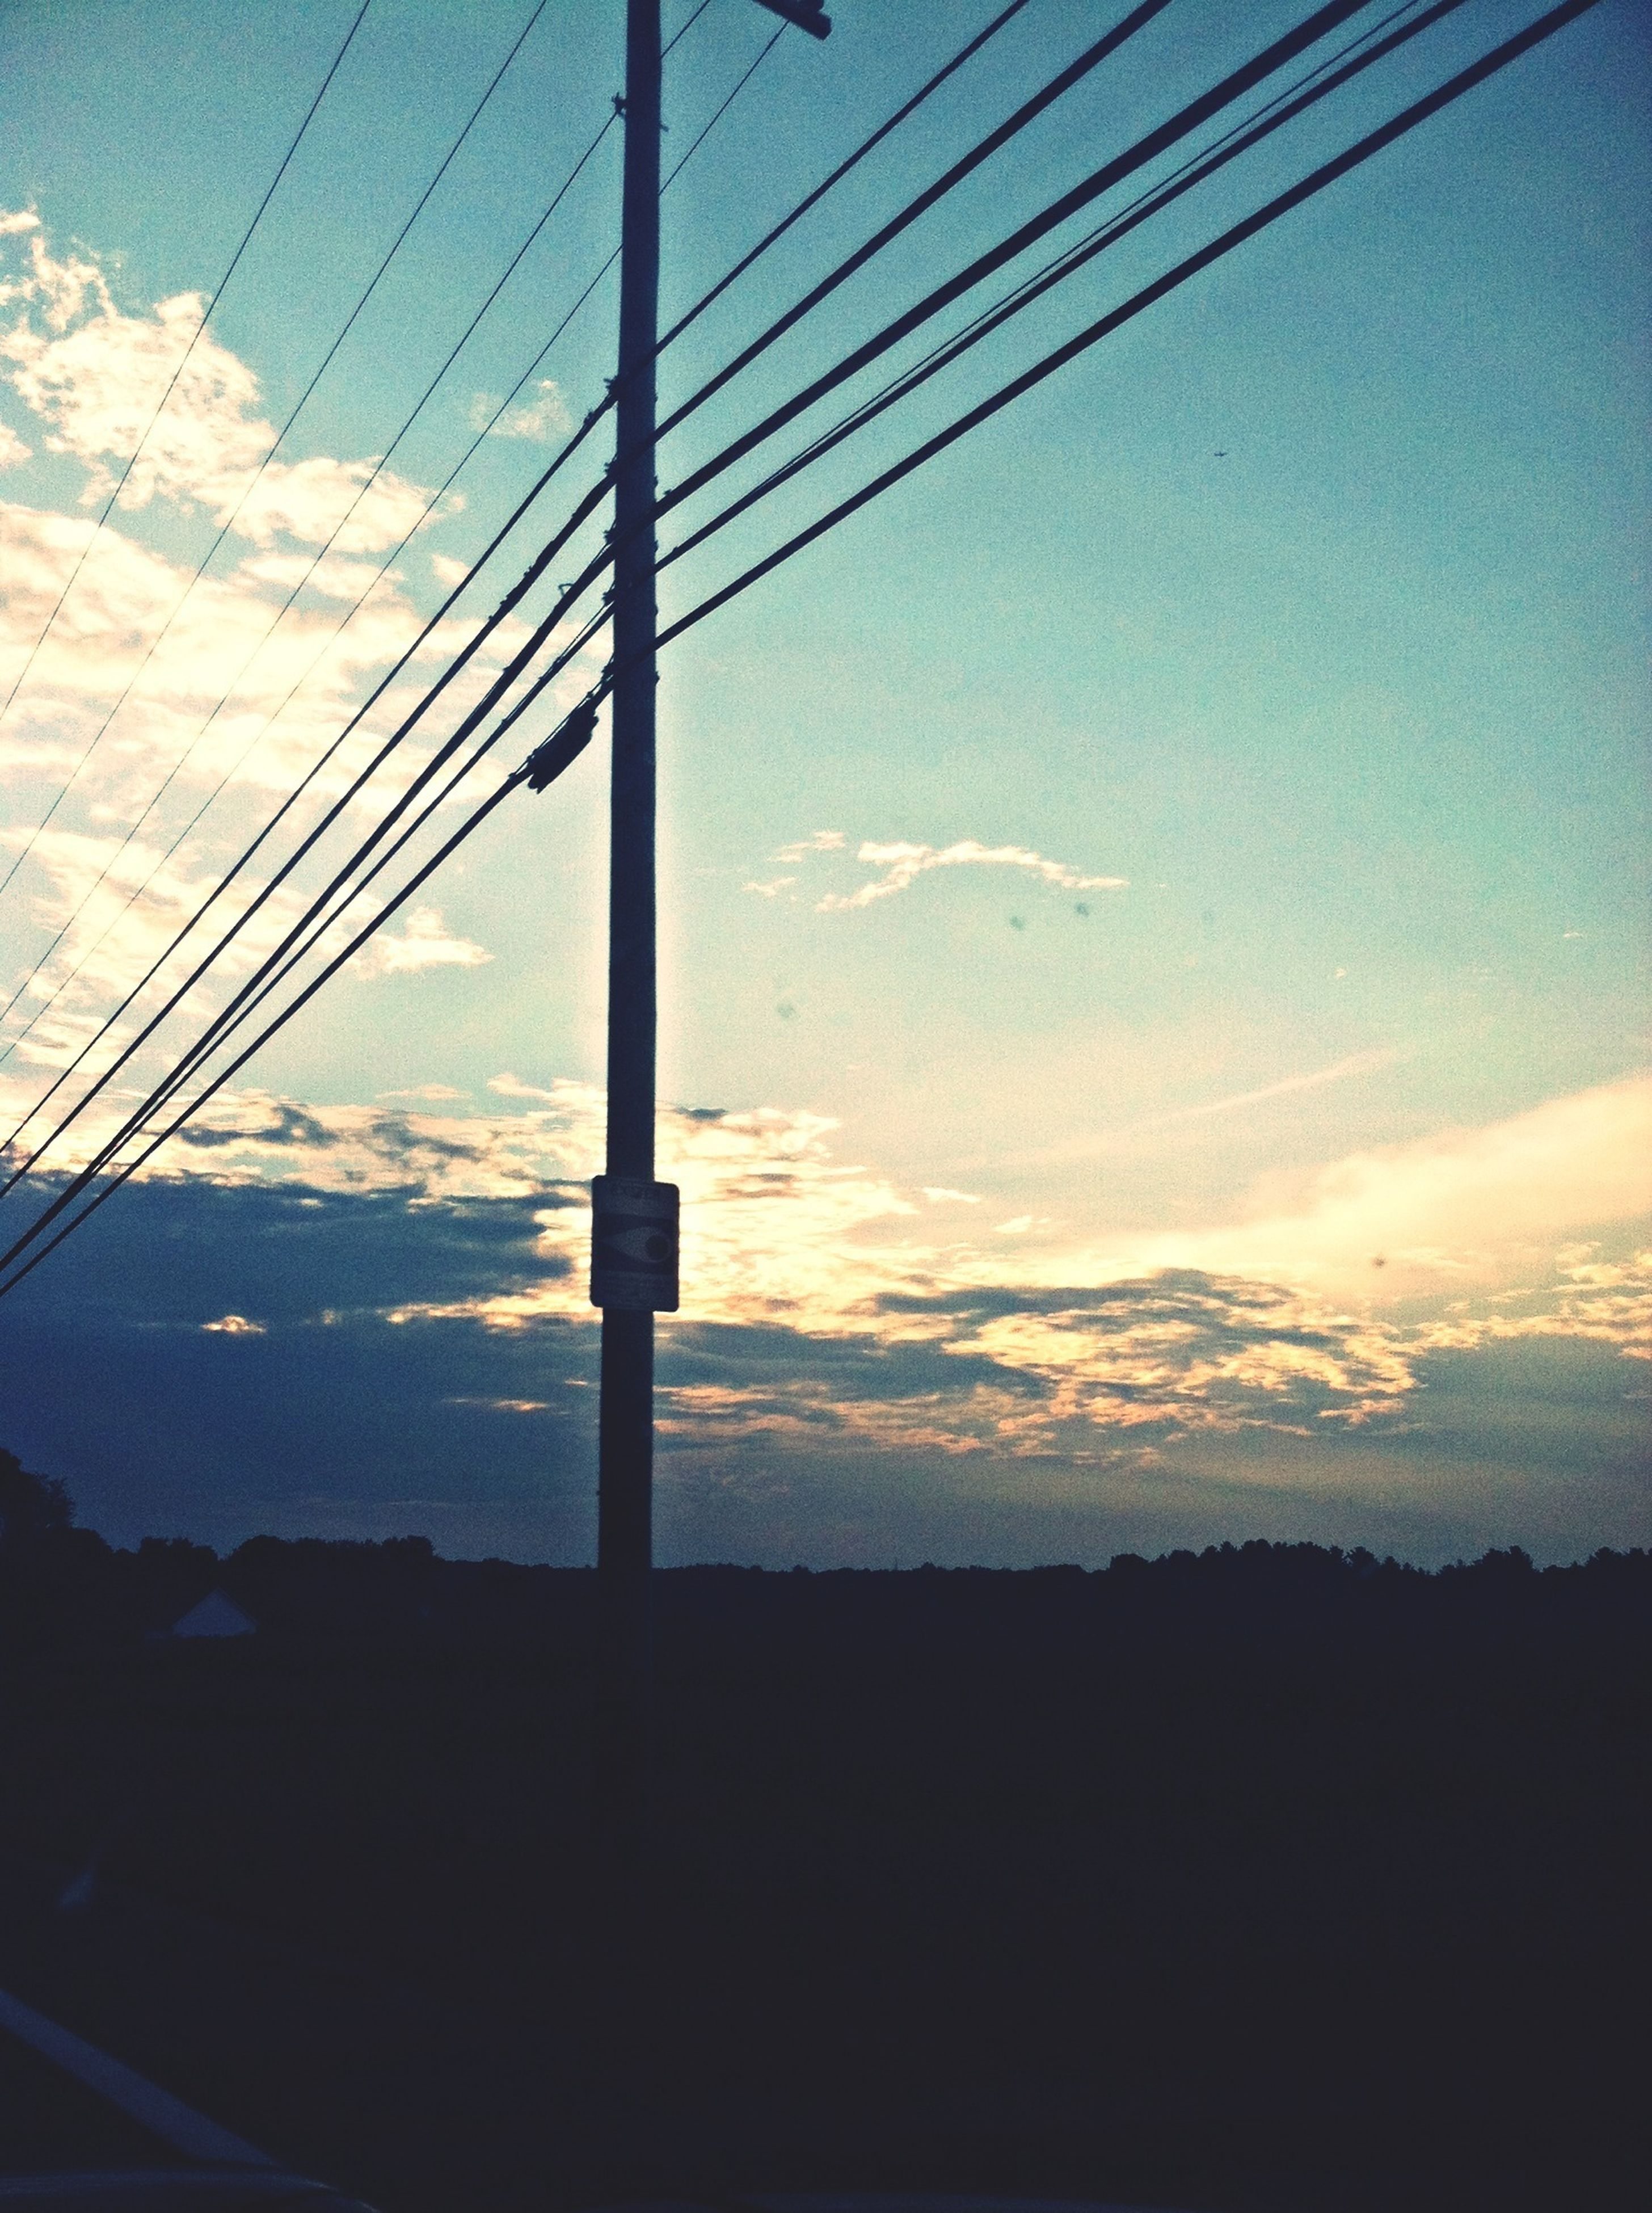 power line, electricity, power supply, electricity pylon, cable, sky, fuel and power generation, silhouette, connection, technology, low angle view, sunset, power cable, cloud - sky, cloud, no people, nature, tranquility, scenics, outdoors